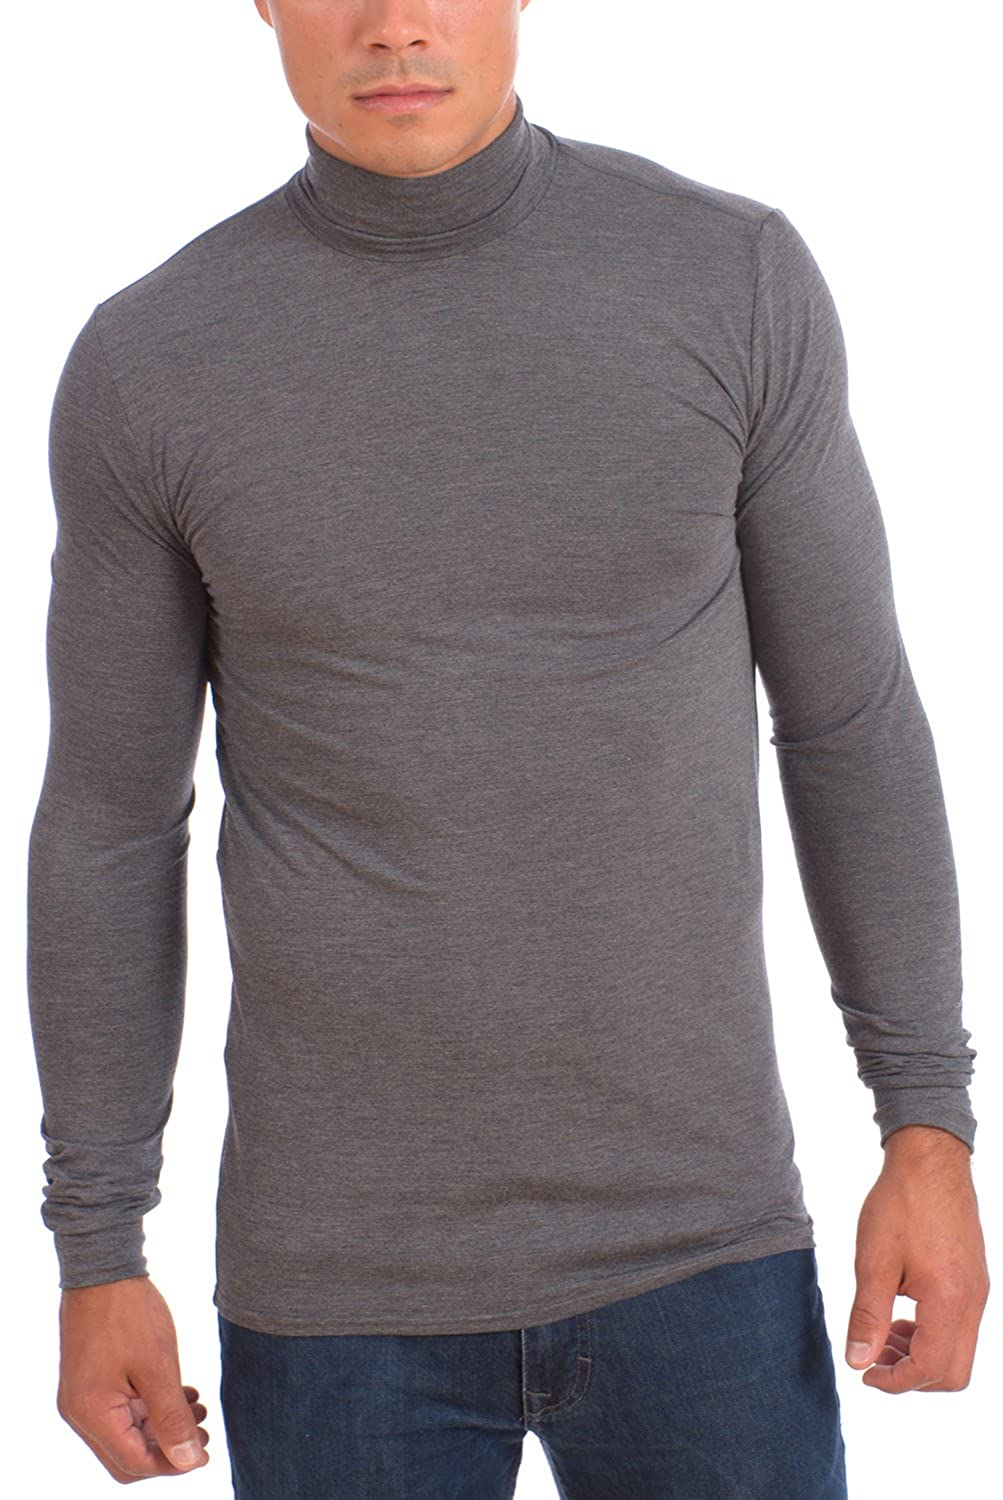 fb5d599da842 POINT ZERO Men s Dri-Fit Turtle Neck Long Sleeve Athletic Peformance ...